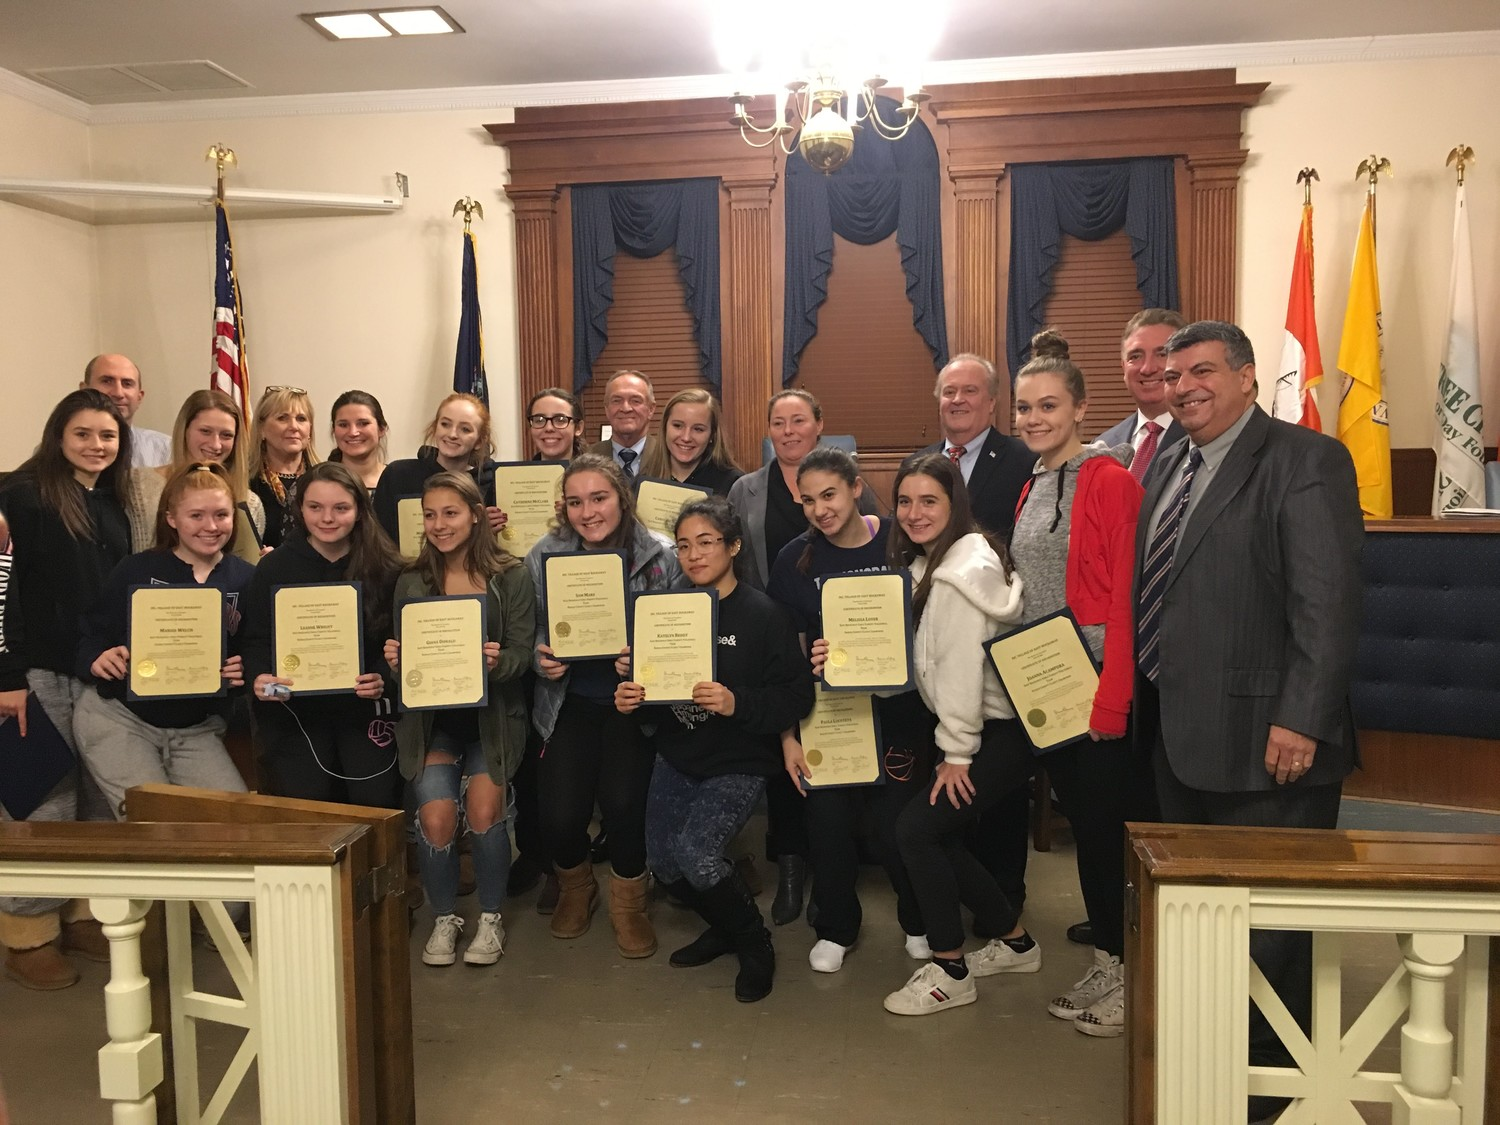 East Rockaway village officials hand out annual honors   Herald ...